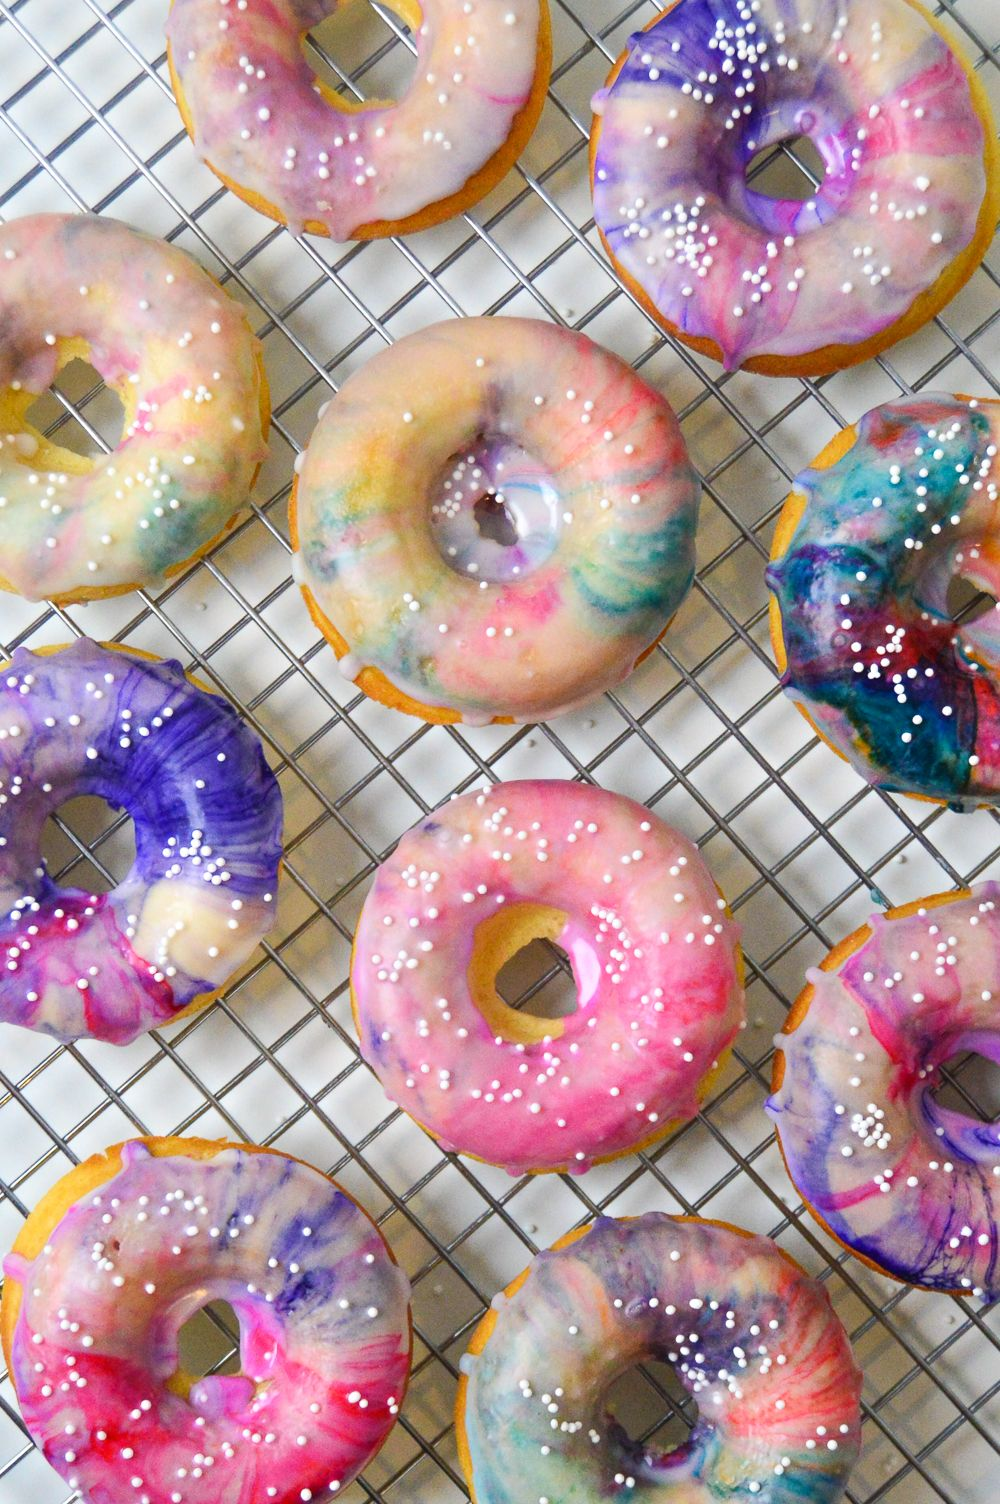 Vanilla Buttermilk Marbled Donuts Recipe Doughnuts Delicious Donuts Baked Donut Recipes